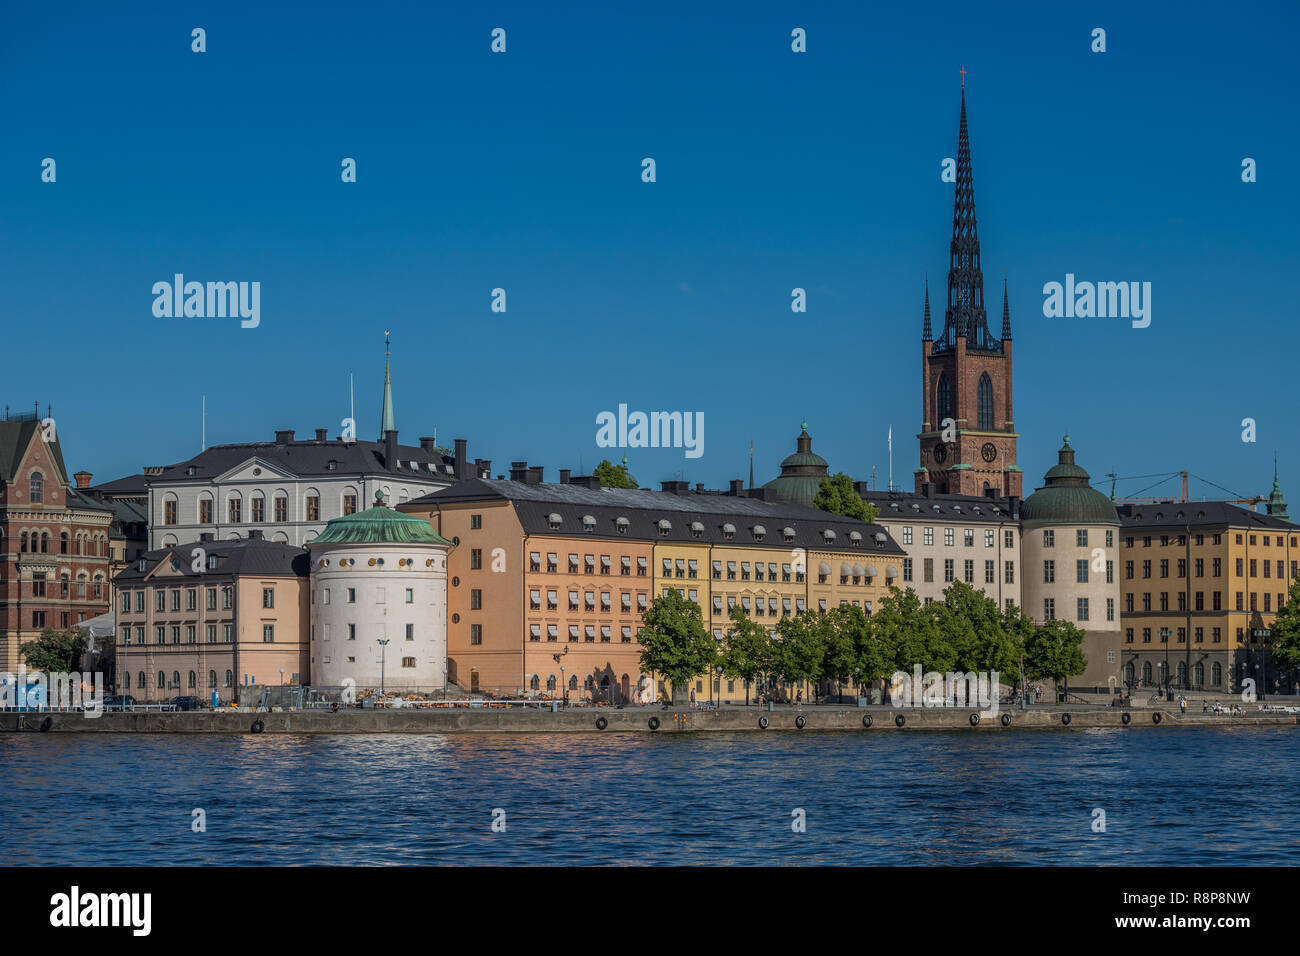 Old city of Stockholm in Sweden - Stock Image